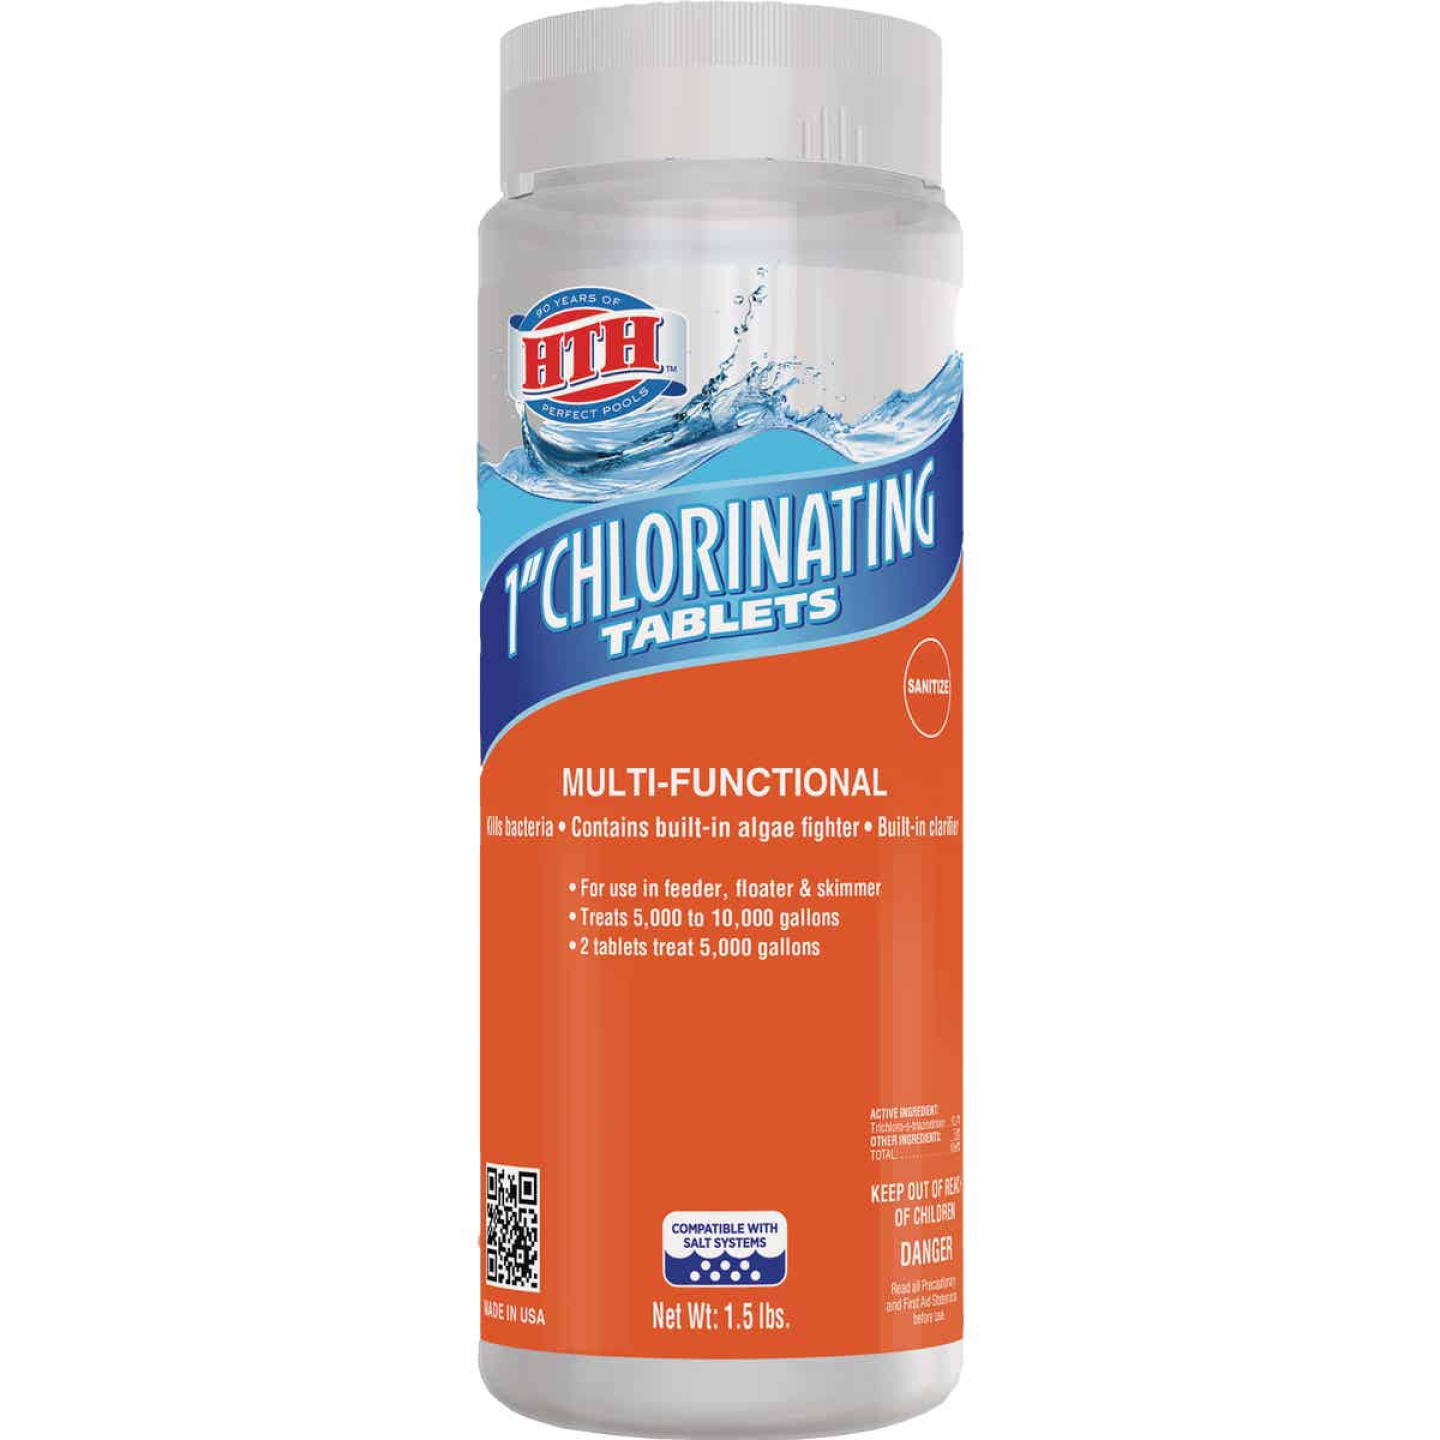 HTH 1.5 Lb. Chlorinating Tablets Image 1